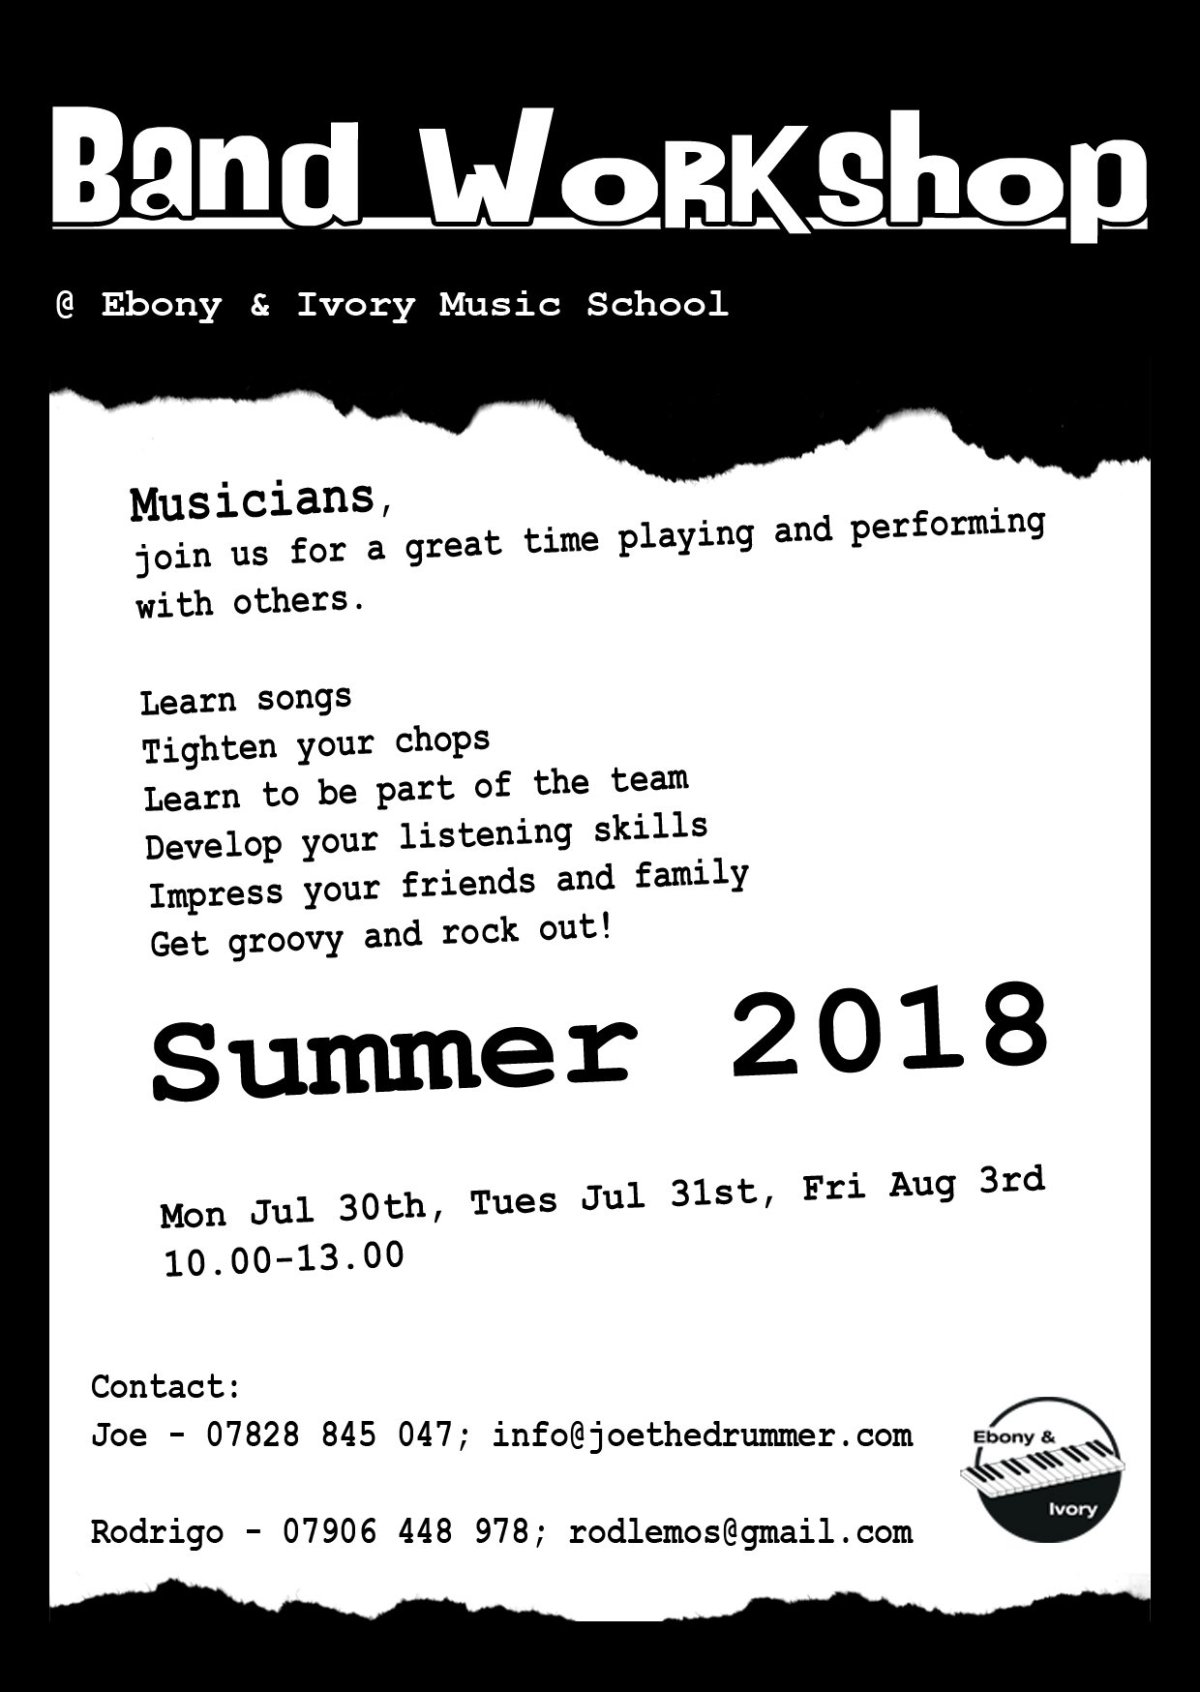 Rock Band Workshop Flyer With Date